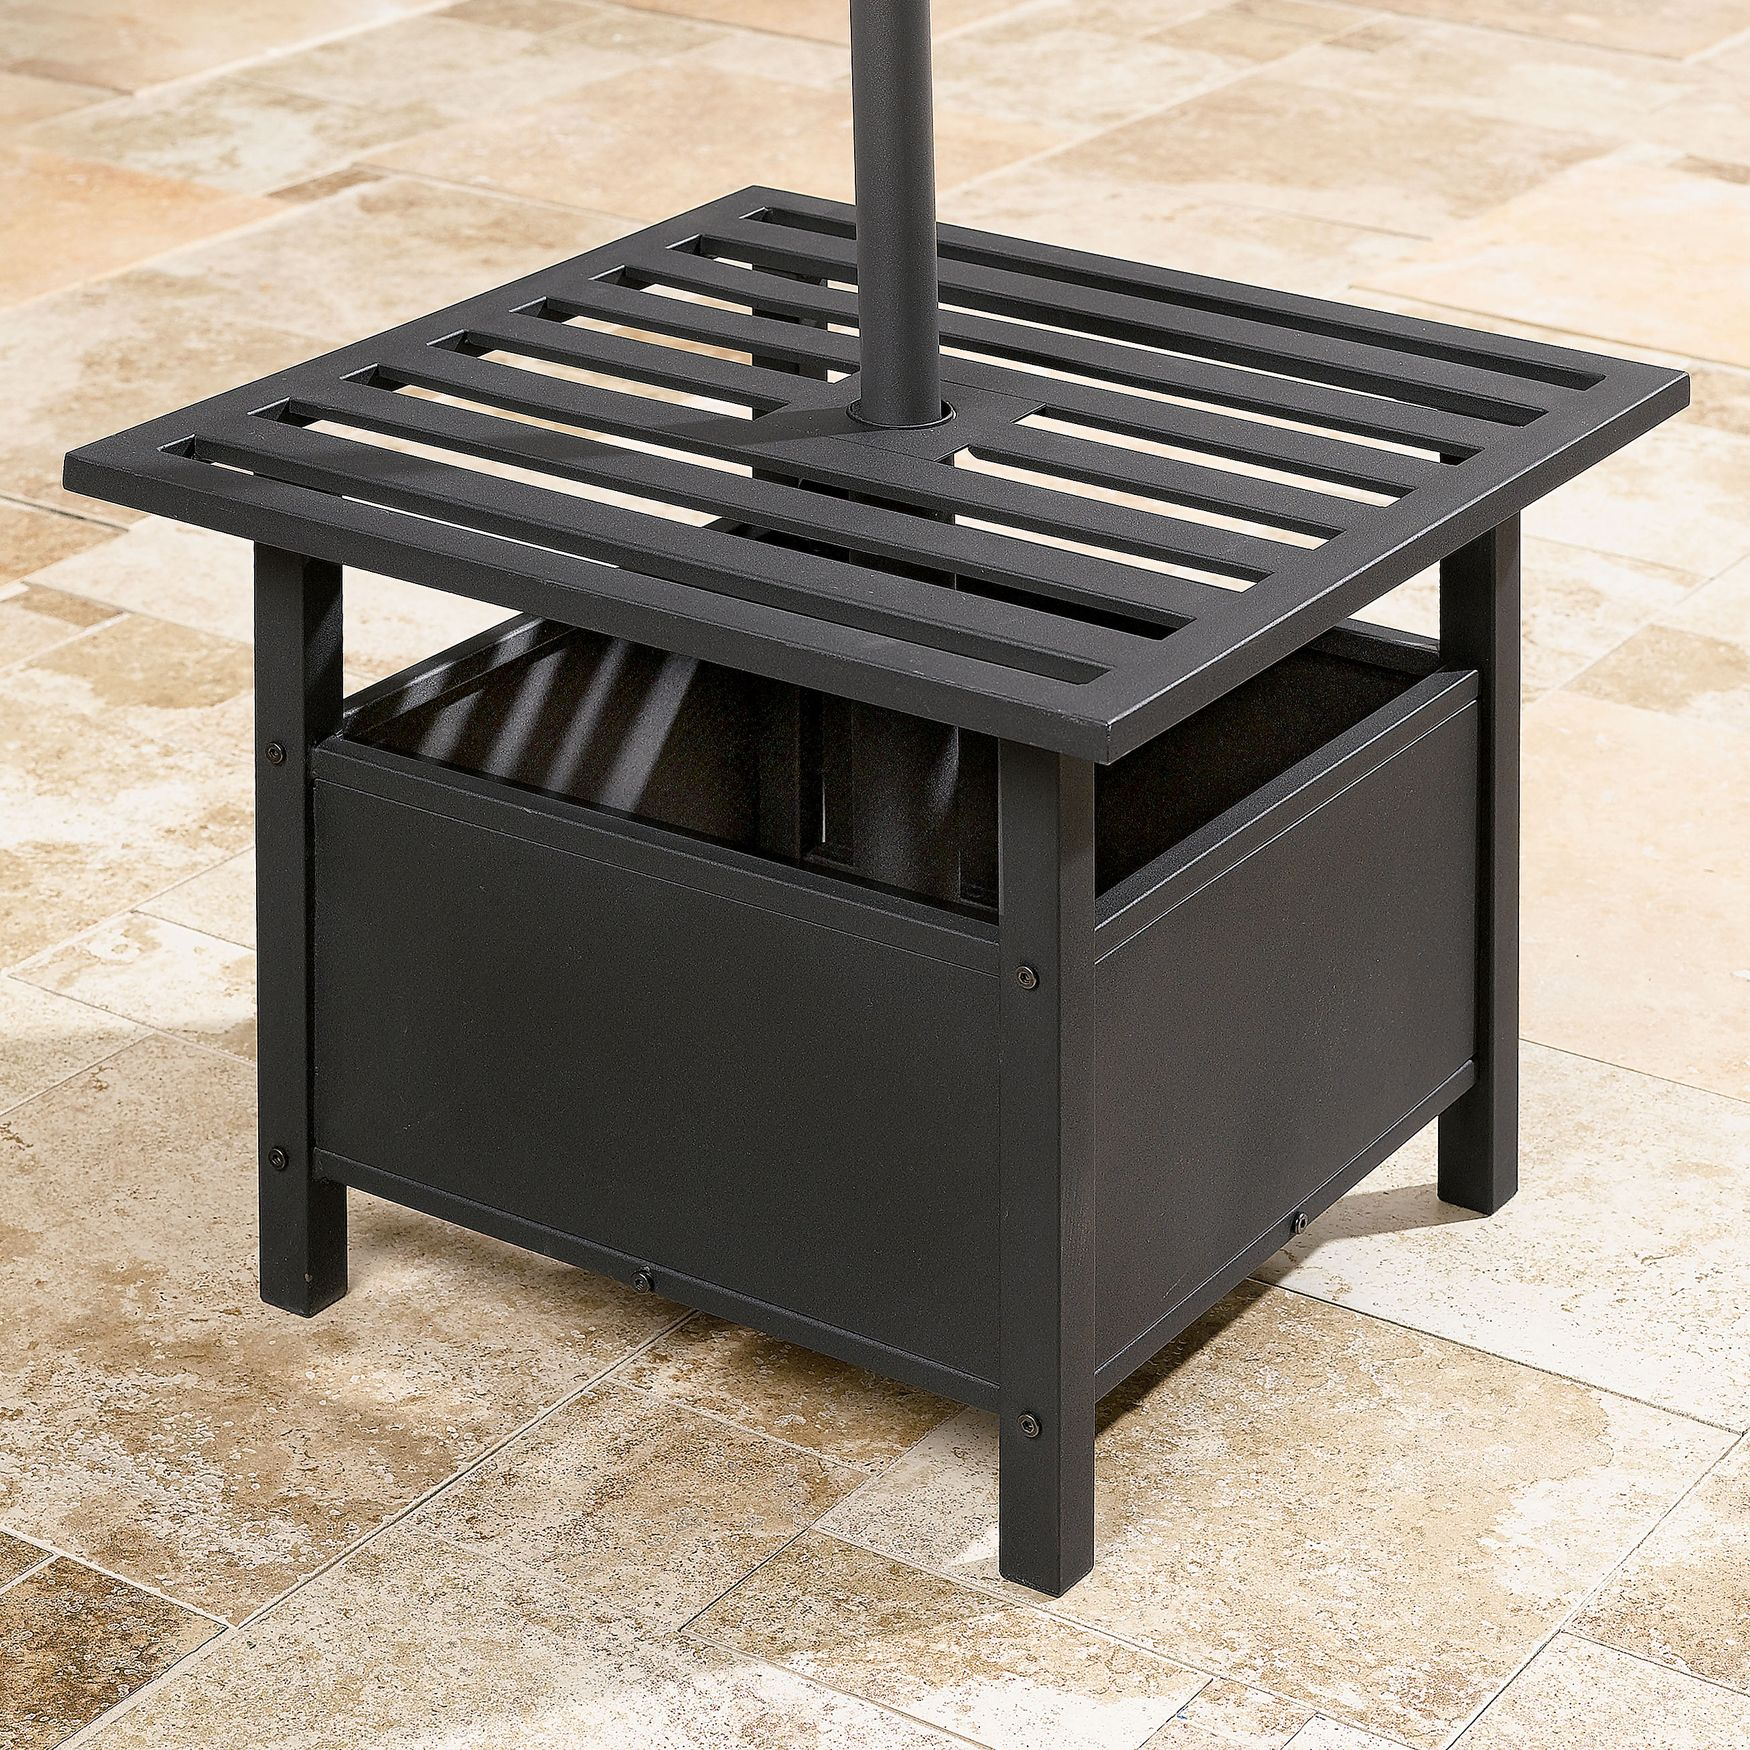 Square And Sturdy Our Umbrella Stand Side Table Is Perfect For